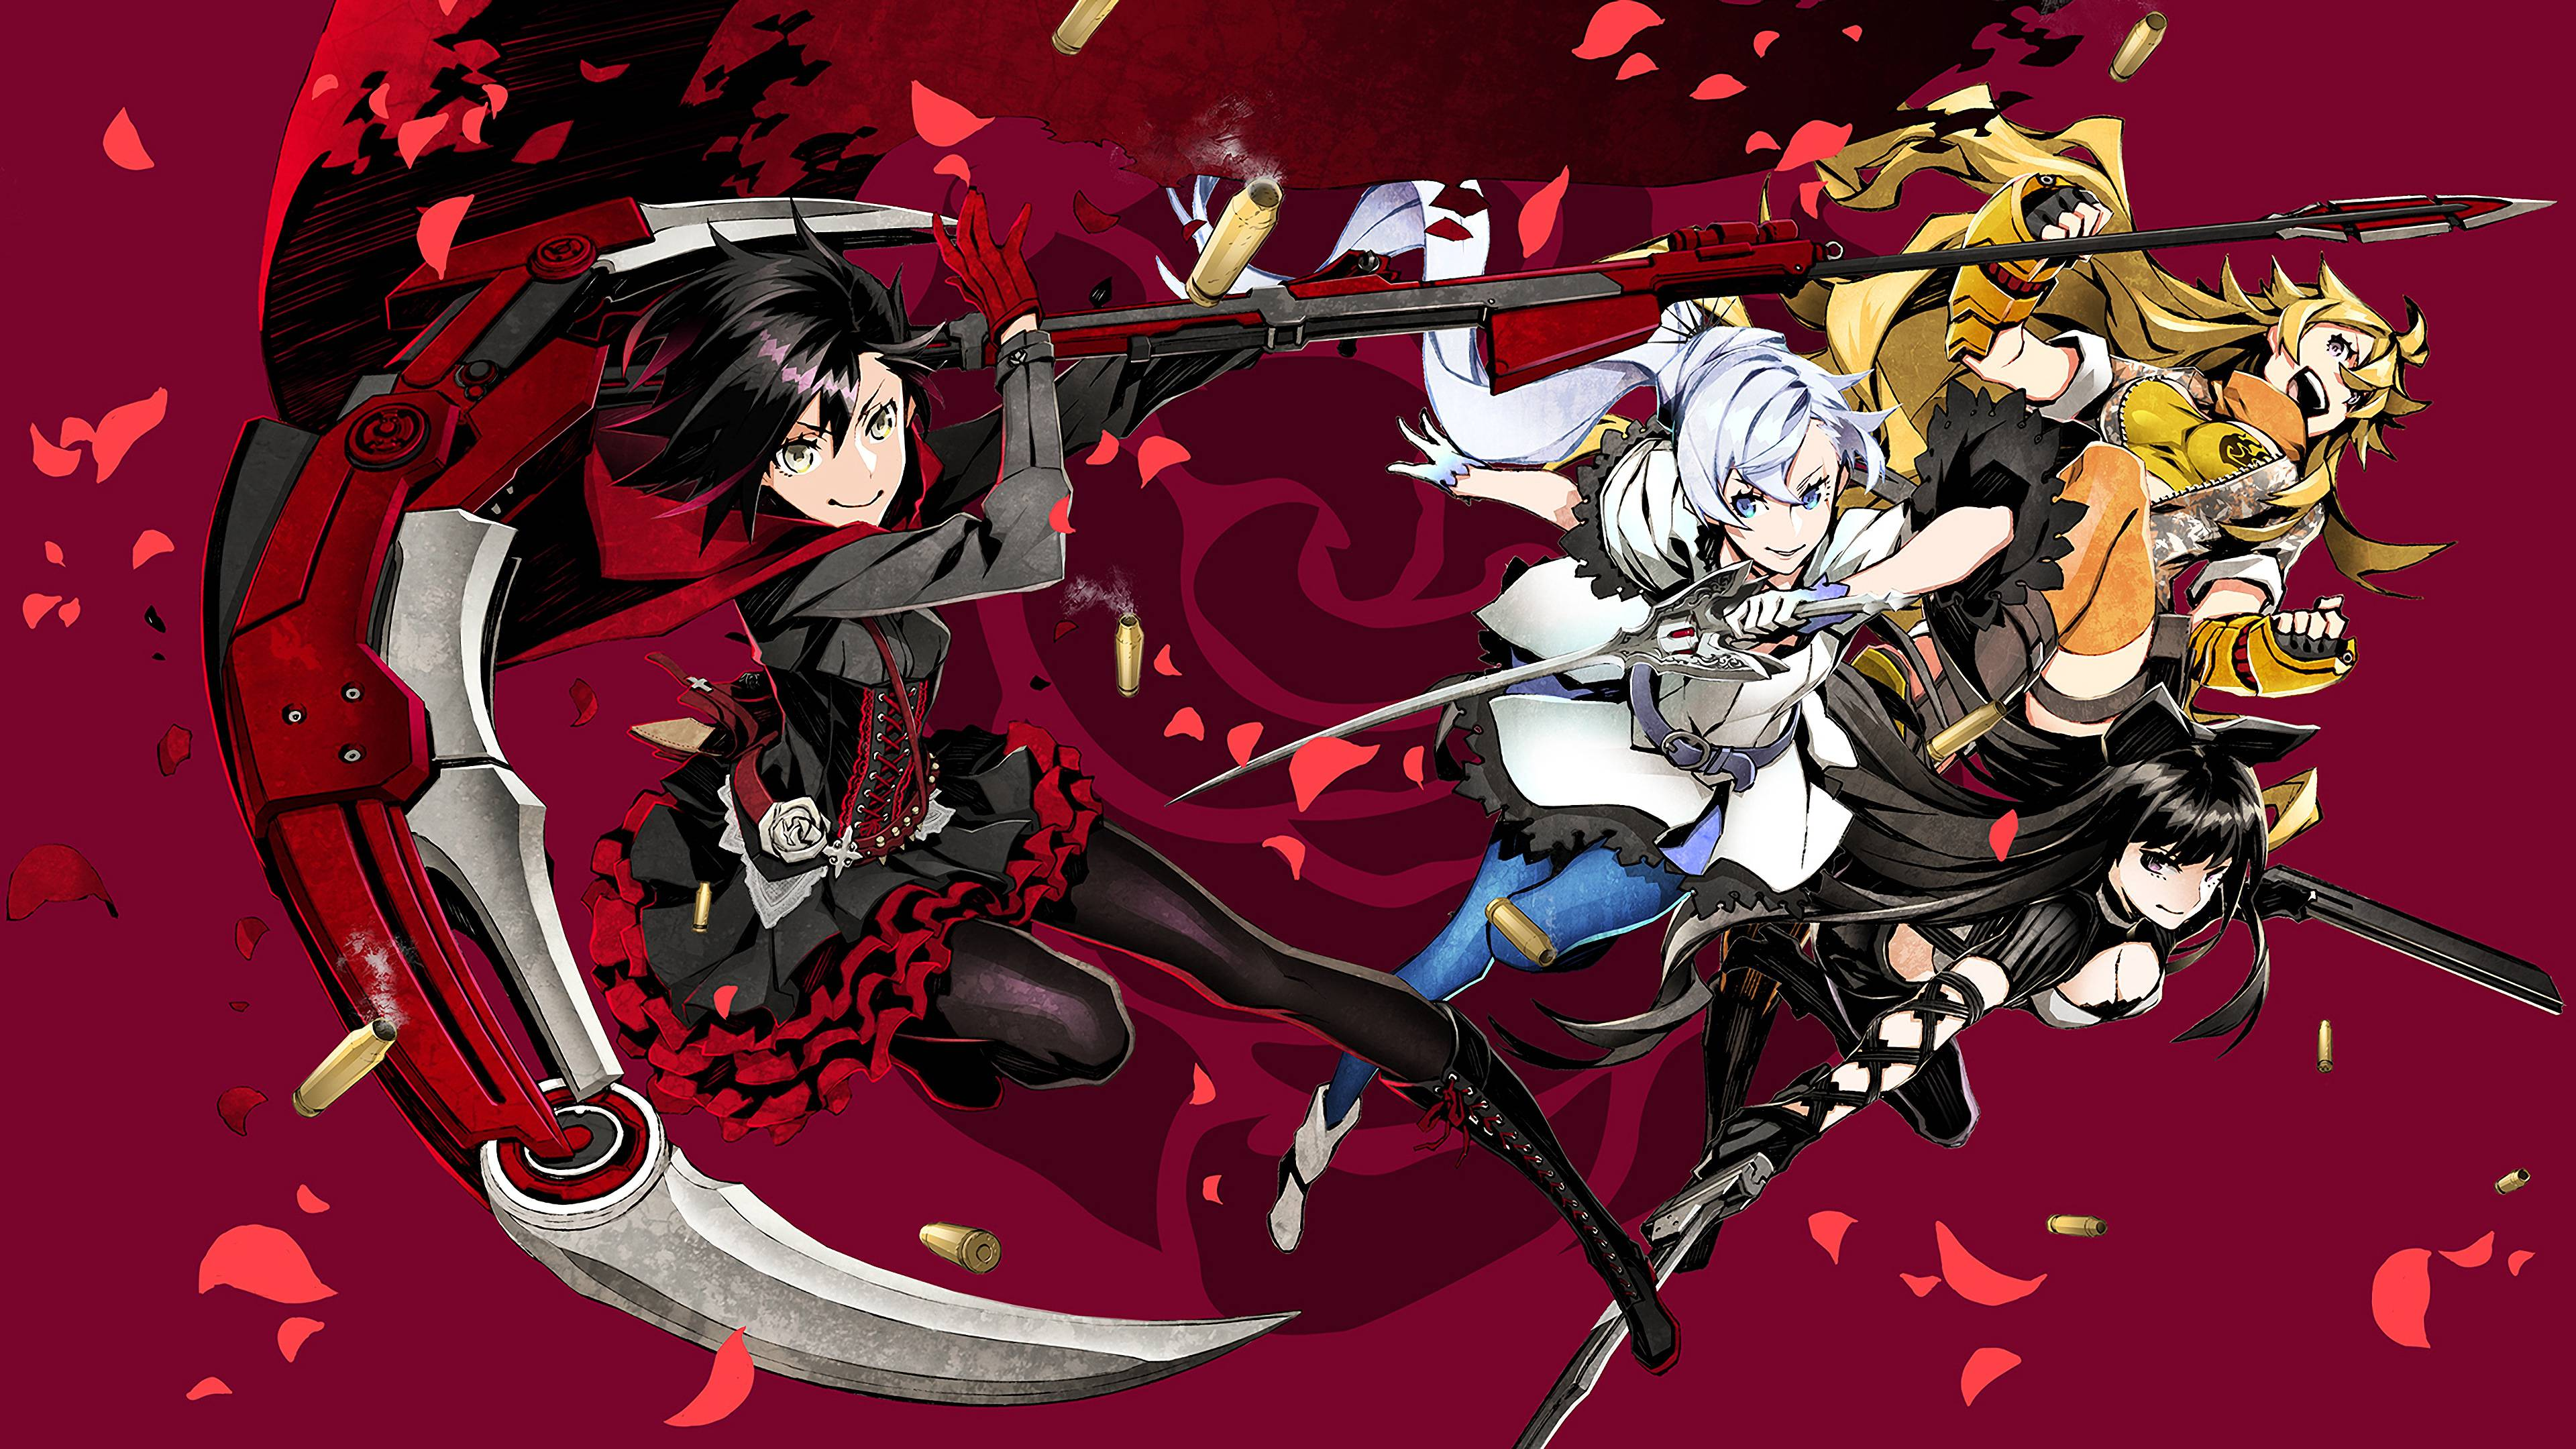 Rwby 4k Wallpapers Top Free Rwby 4k Backgrounds Wallpaperaccess